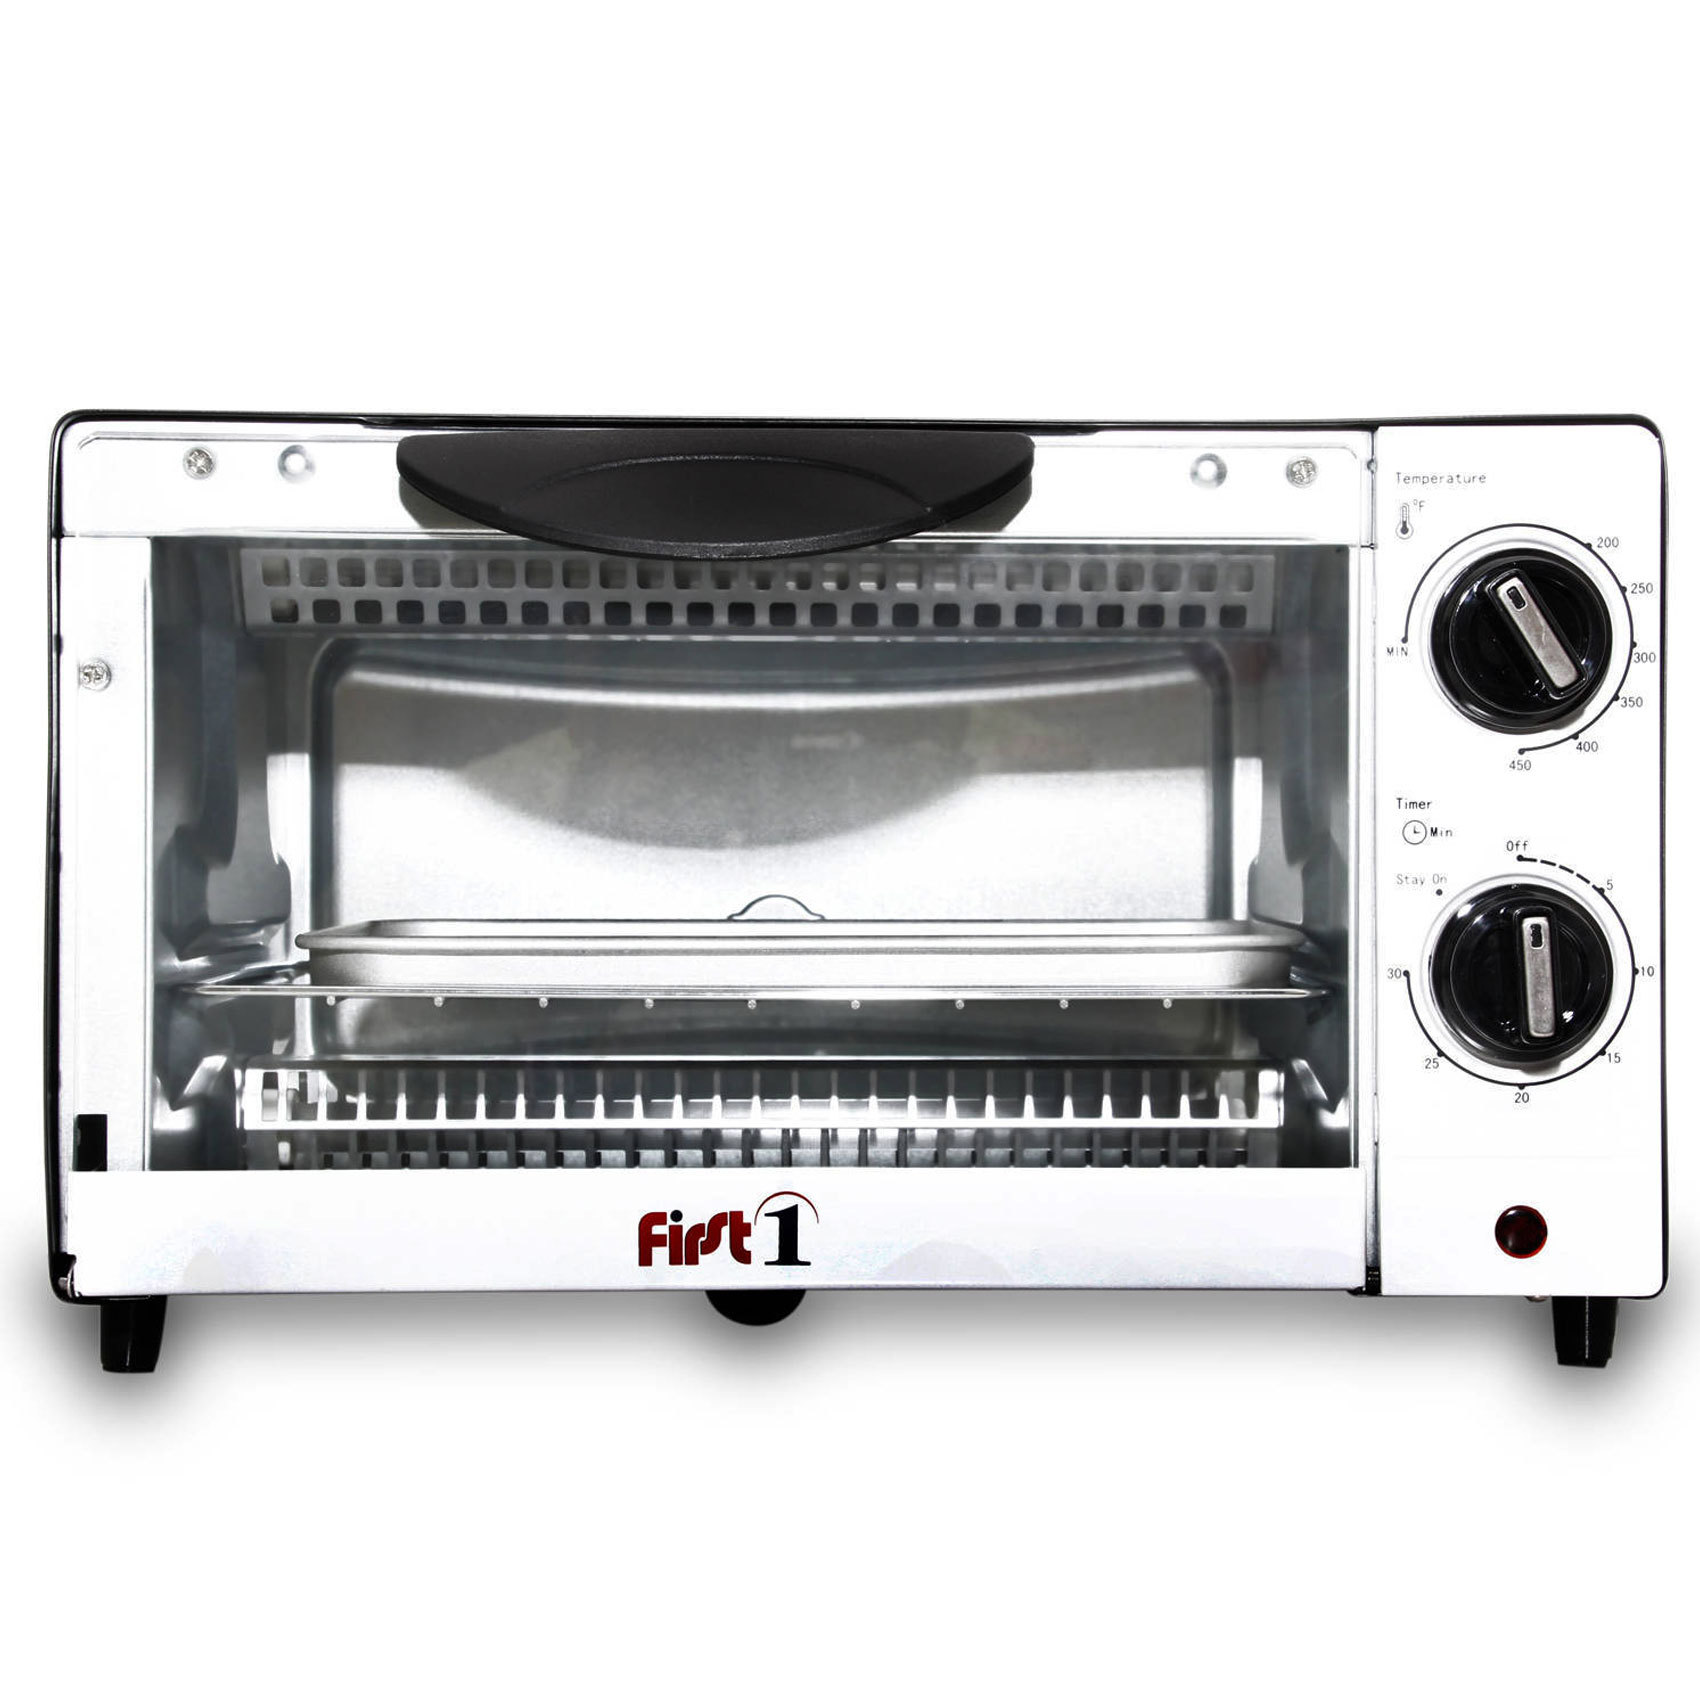 FIRST1 OVEN FTO-049